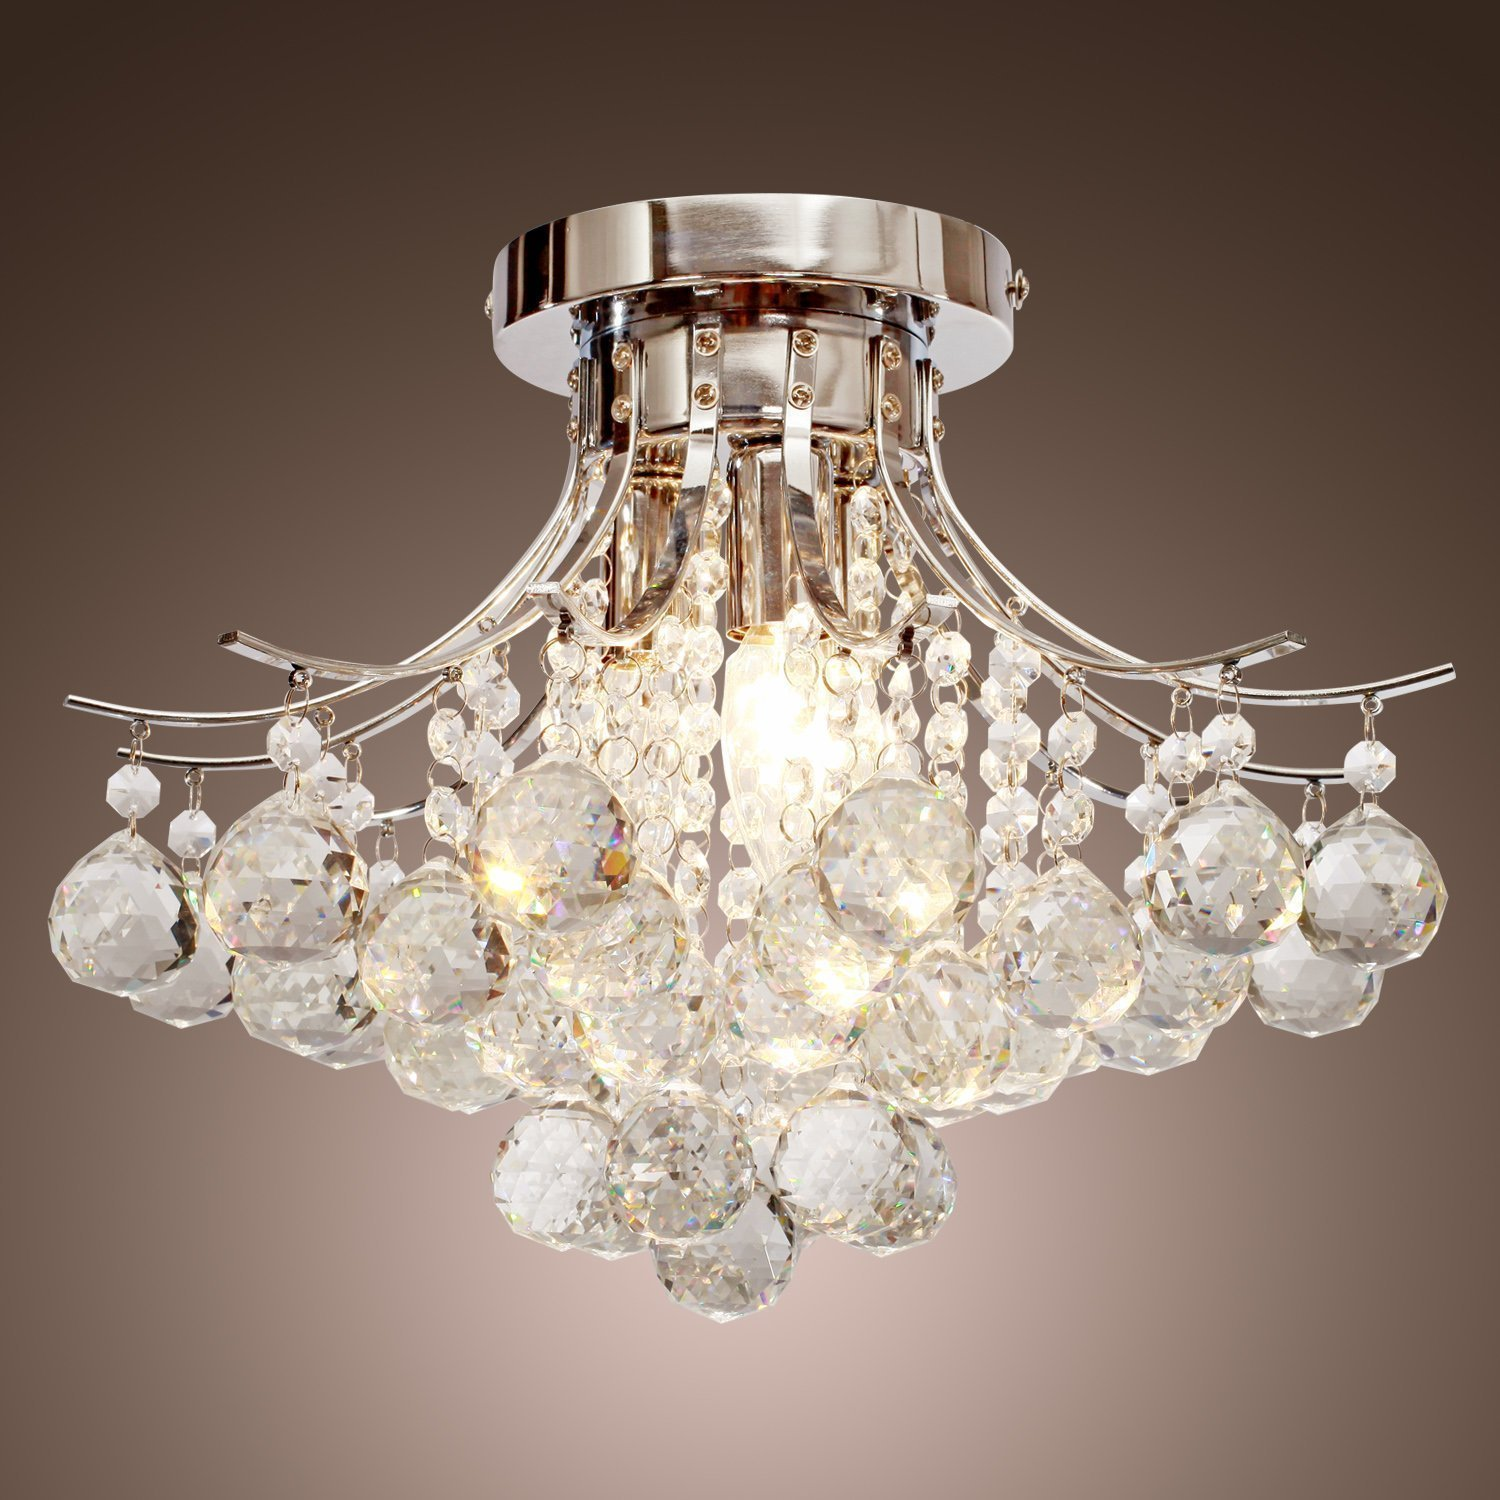 Loco chrome finish crystal chandelier with 3 lights mini style loco chrome finish crystal chandelier with 3 lights mini style flush mount ceiling light fixture for study roomoffice dining room bedroom aloadofball Gallery